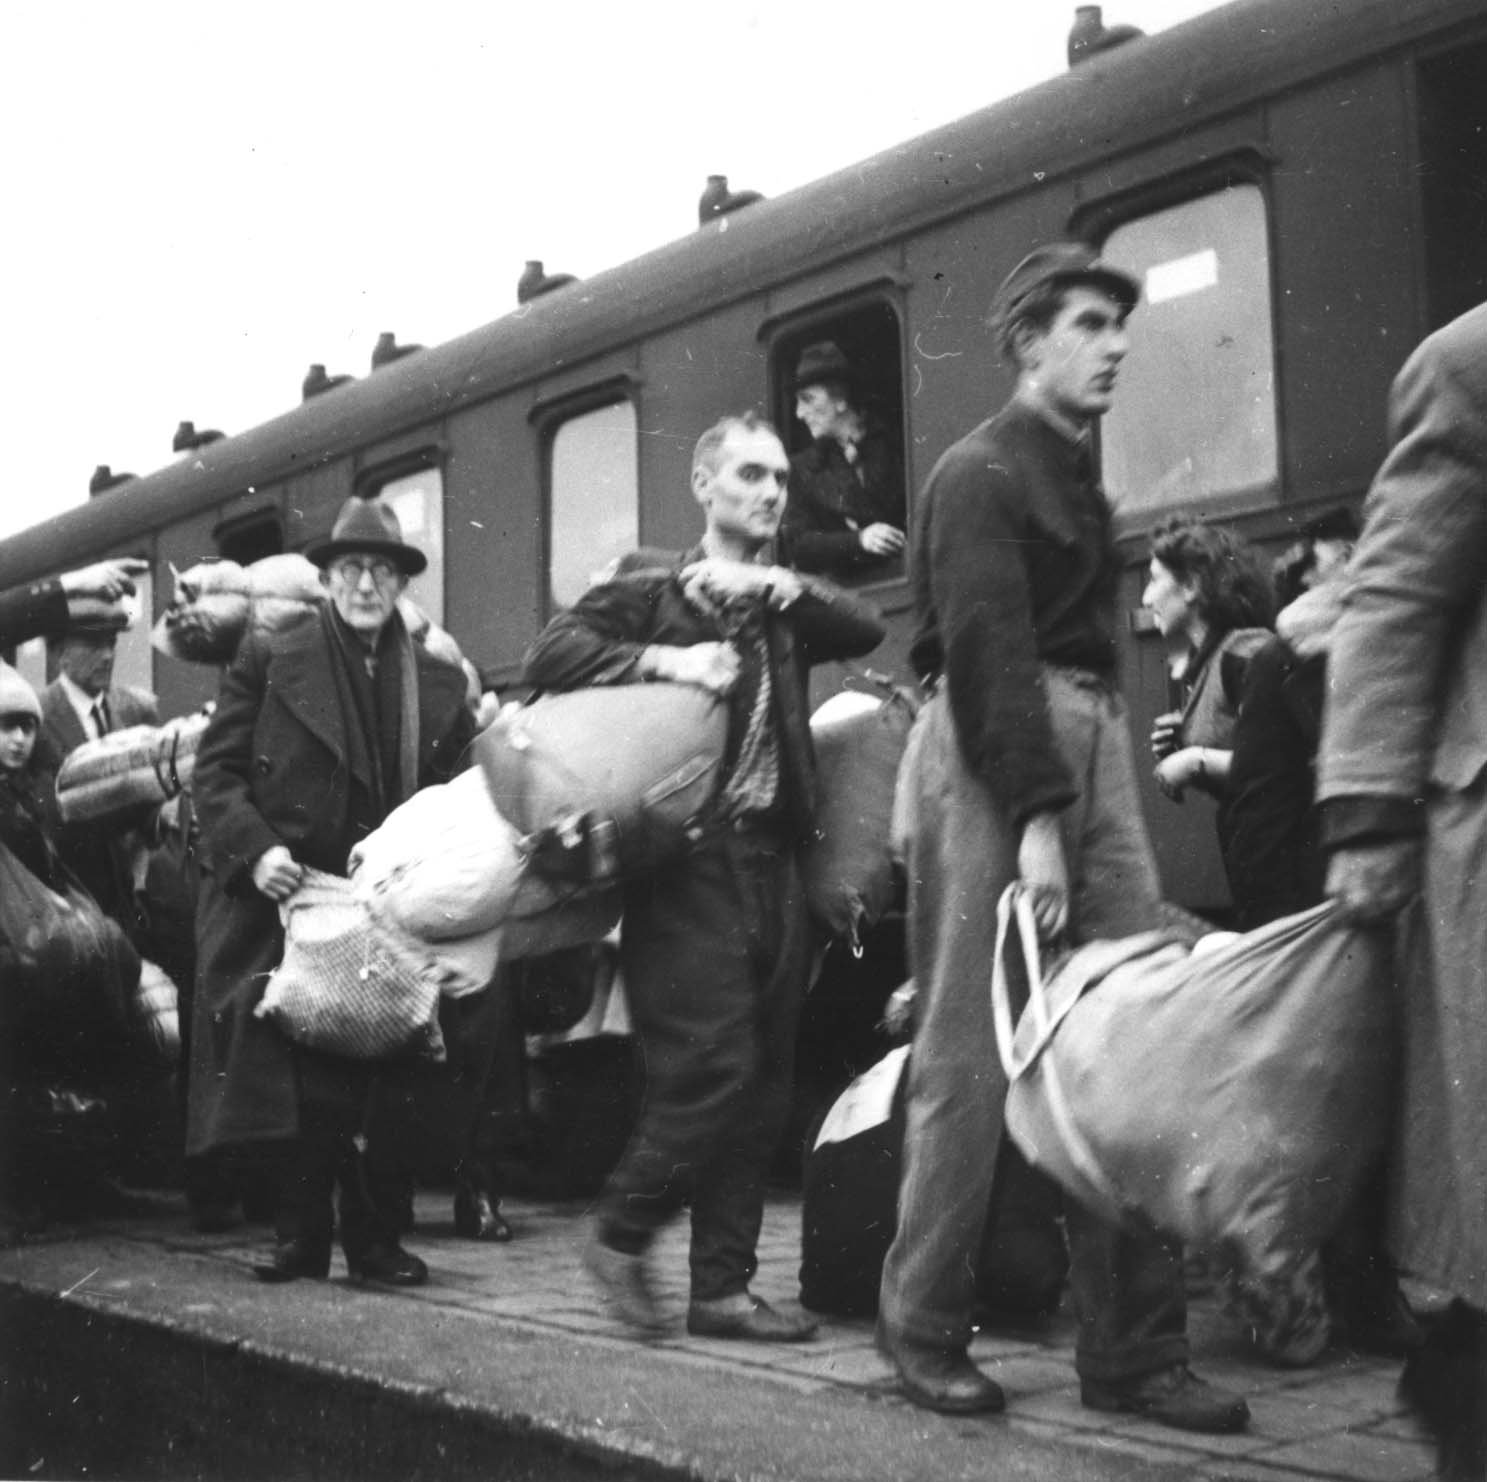 Deportation of Jews from Central Europe to Riga during the Holocaust